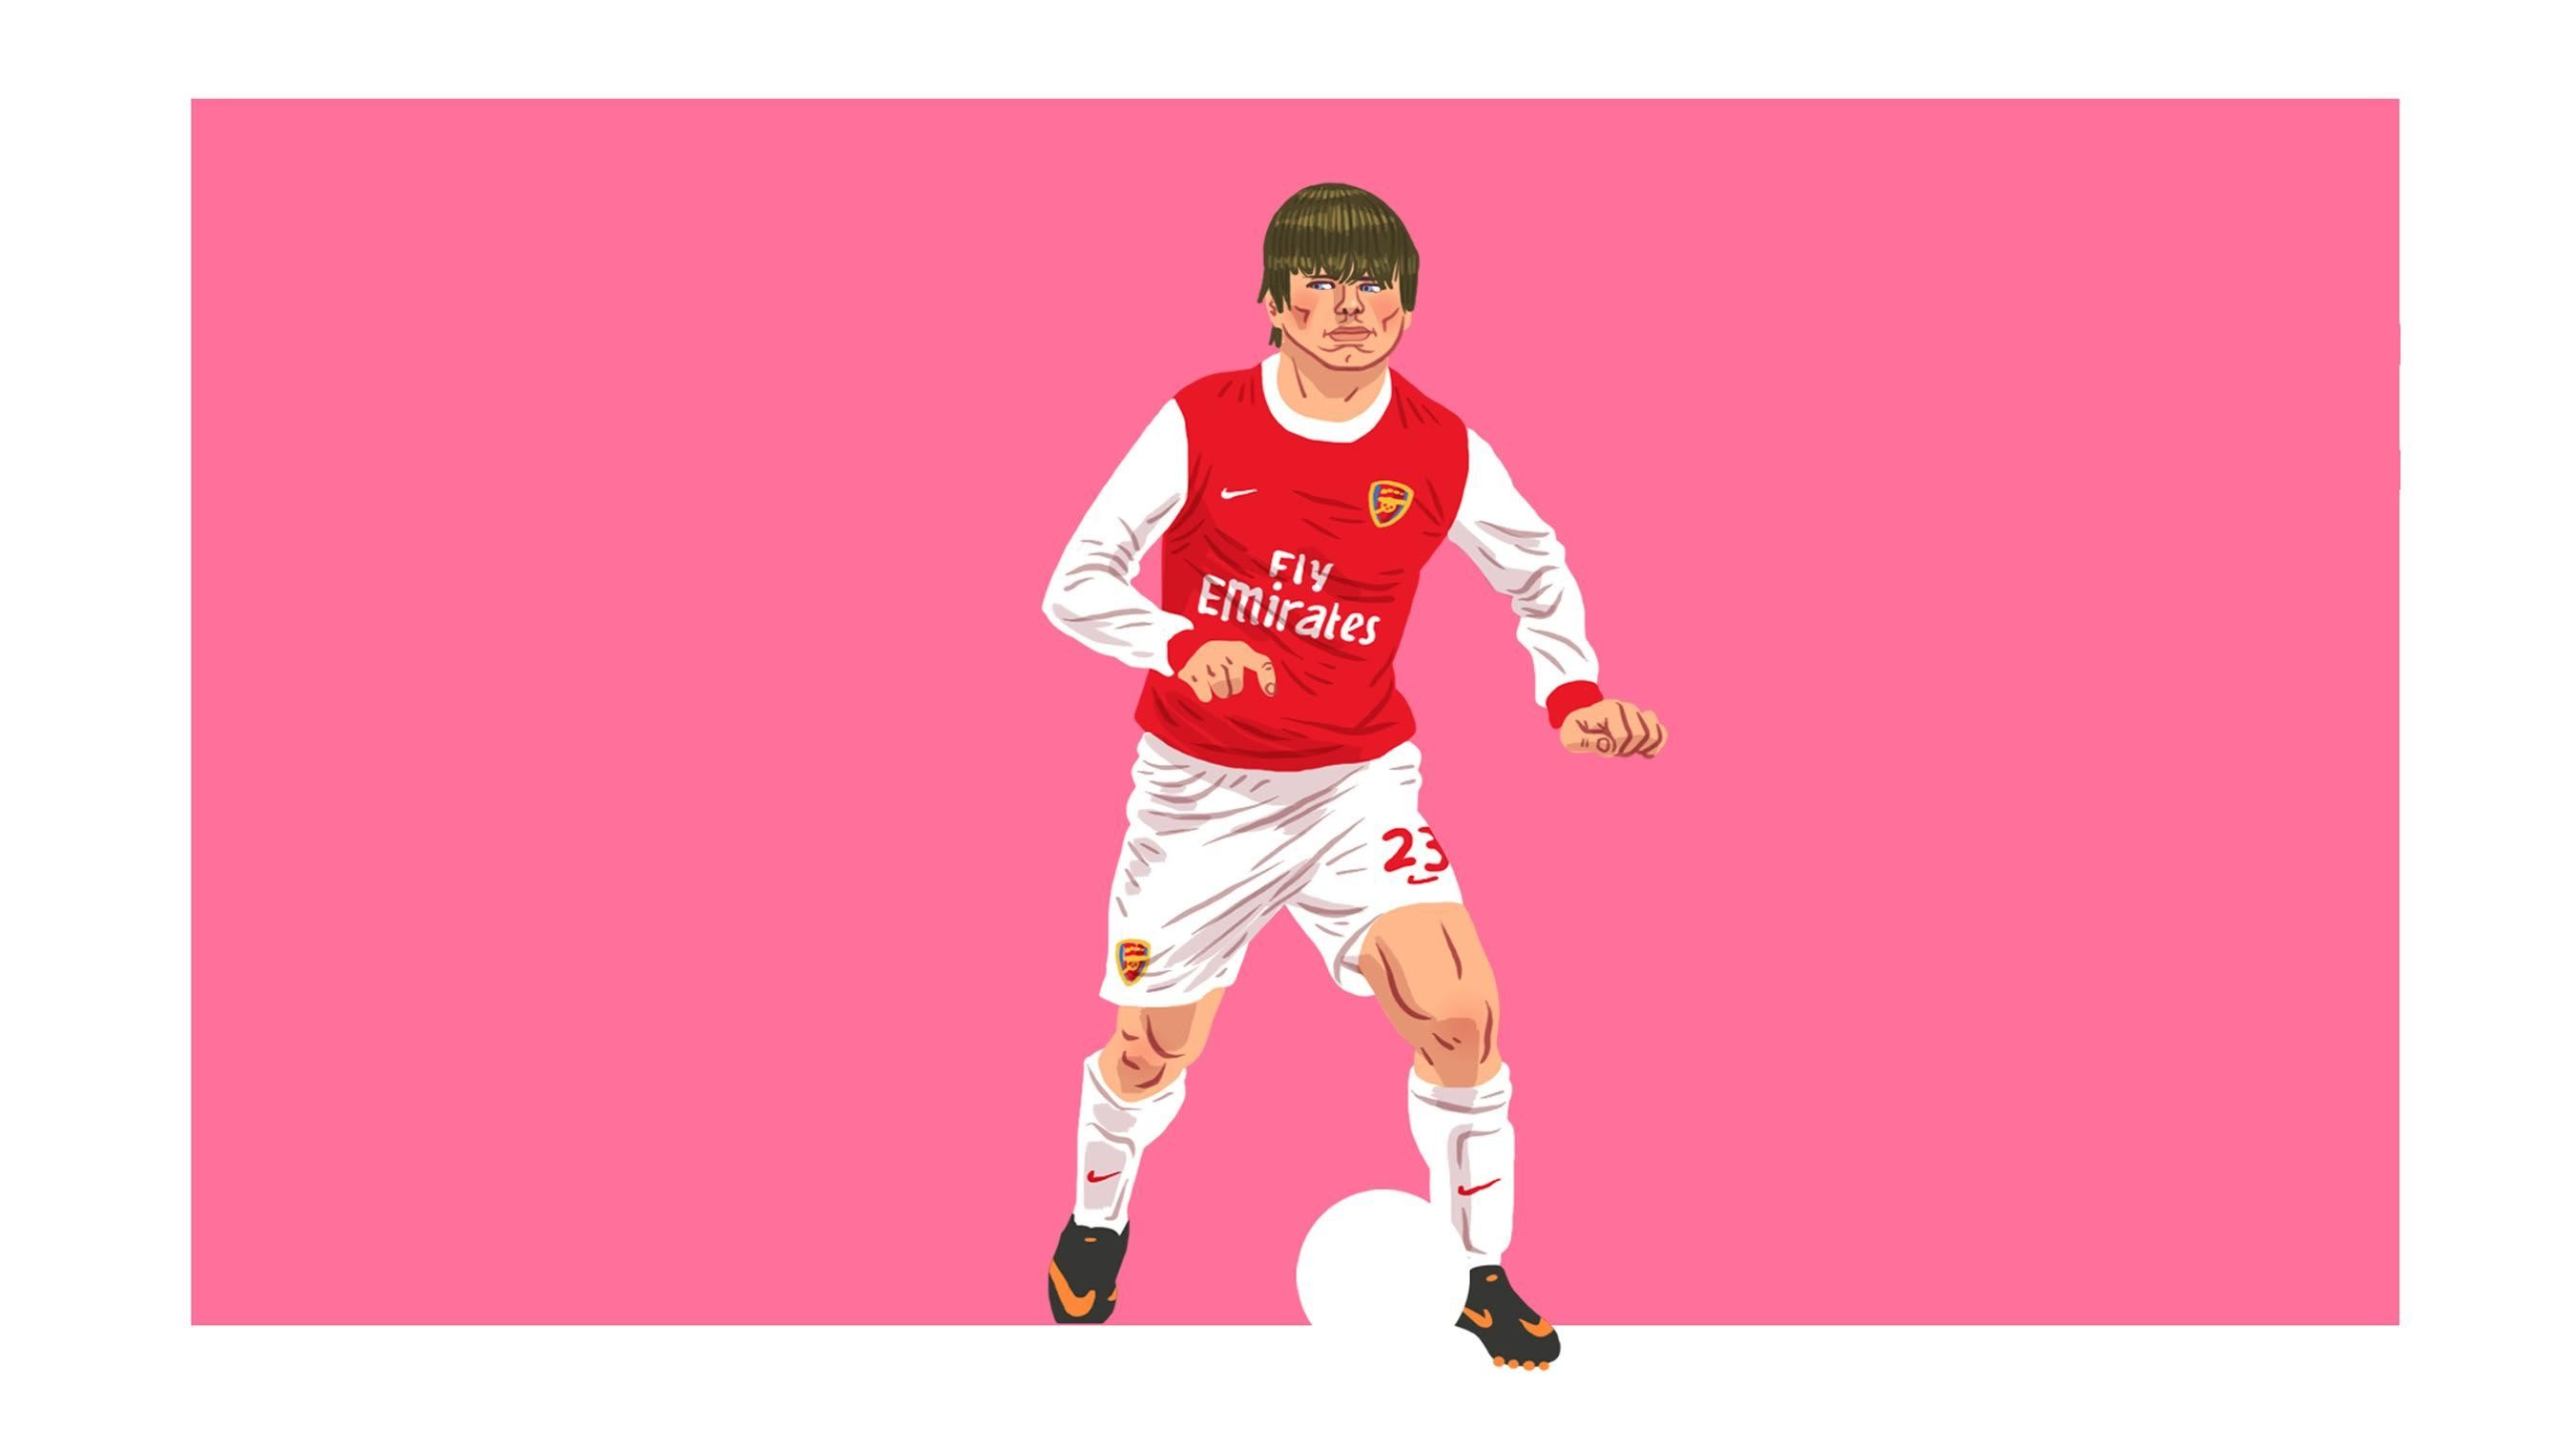 The Cult: Andrey Arshavin